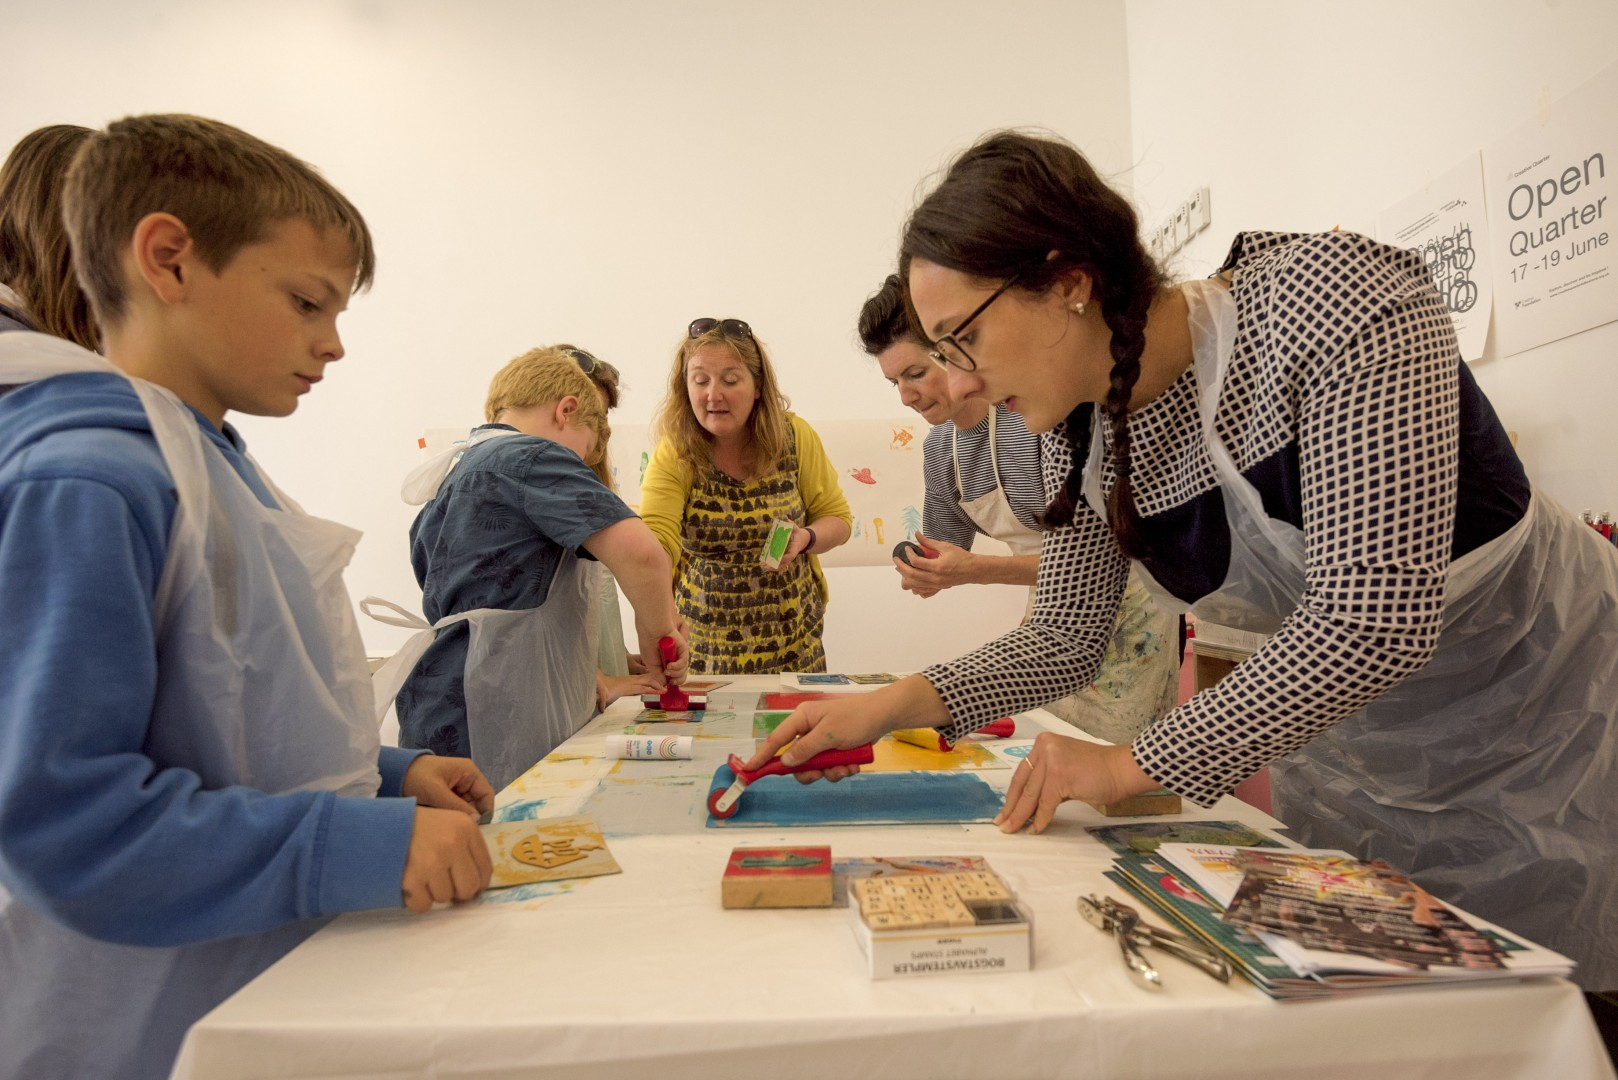 Family Printing Workshop at Block 67  Folkestone Creative Quarter  June 2016  photo by Ben Hart